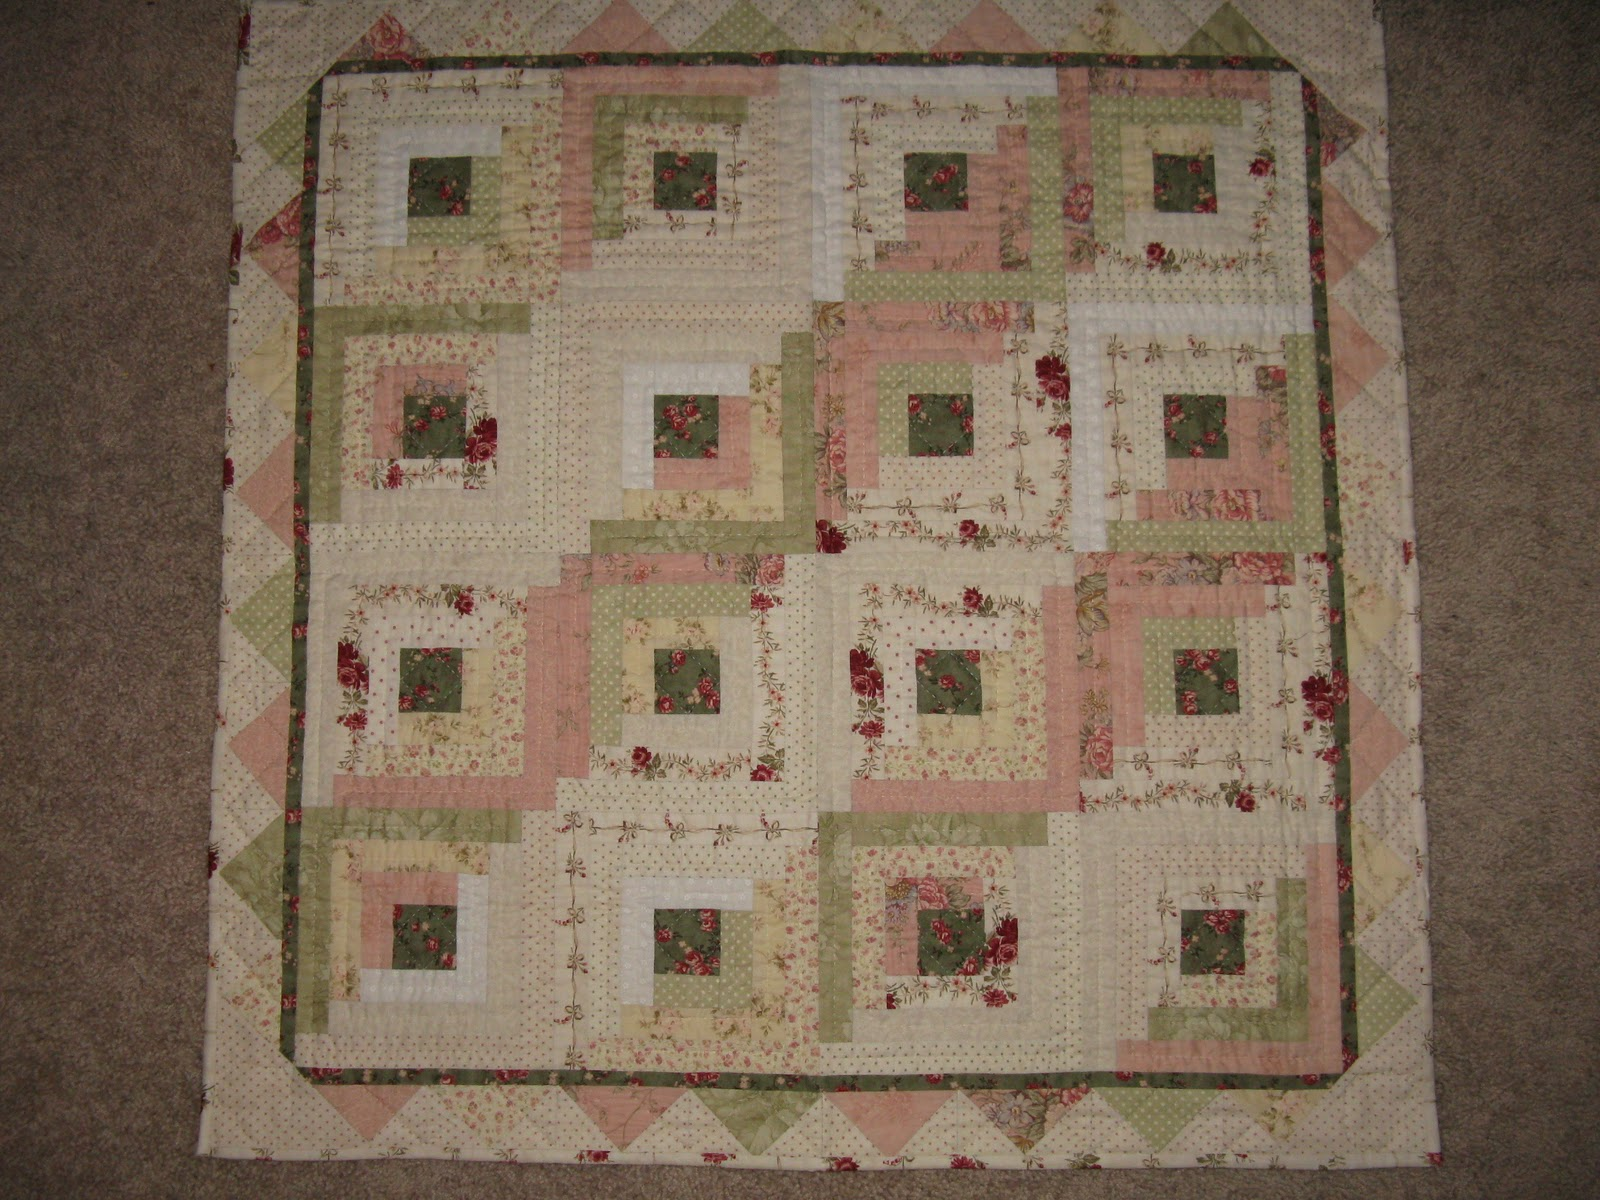 Amazing photo of My favorite quilt pattern is the Log Cabin I have probably made about with #545637 color and 1600x1200 pixels